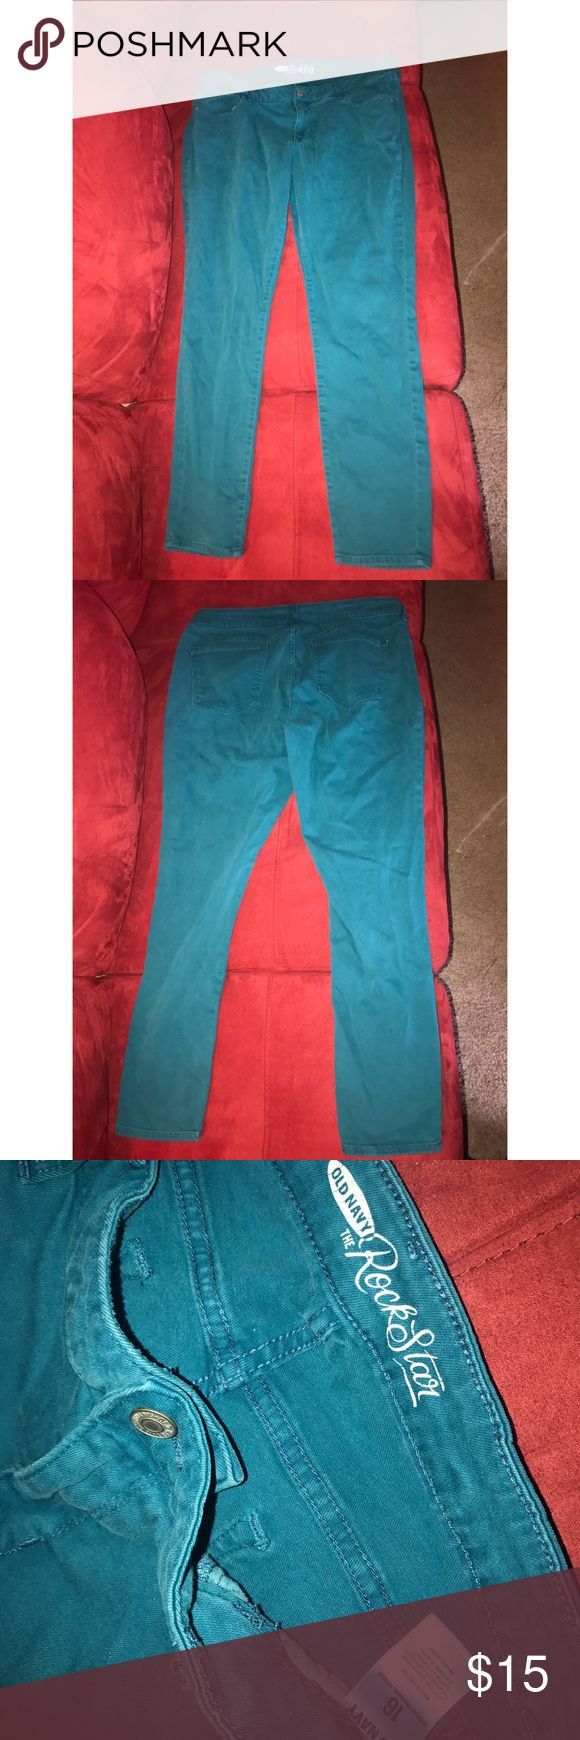 Teal Old Navy RockStar skinny jeans! 💙 Size 16. Only worn a few times. Smoke-free home. Perfect condition! Old Navy Jeans Skinny